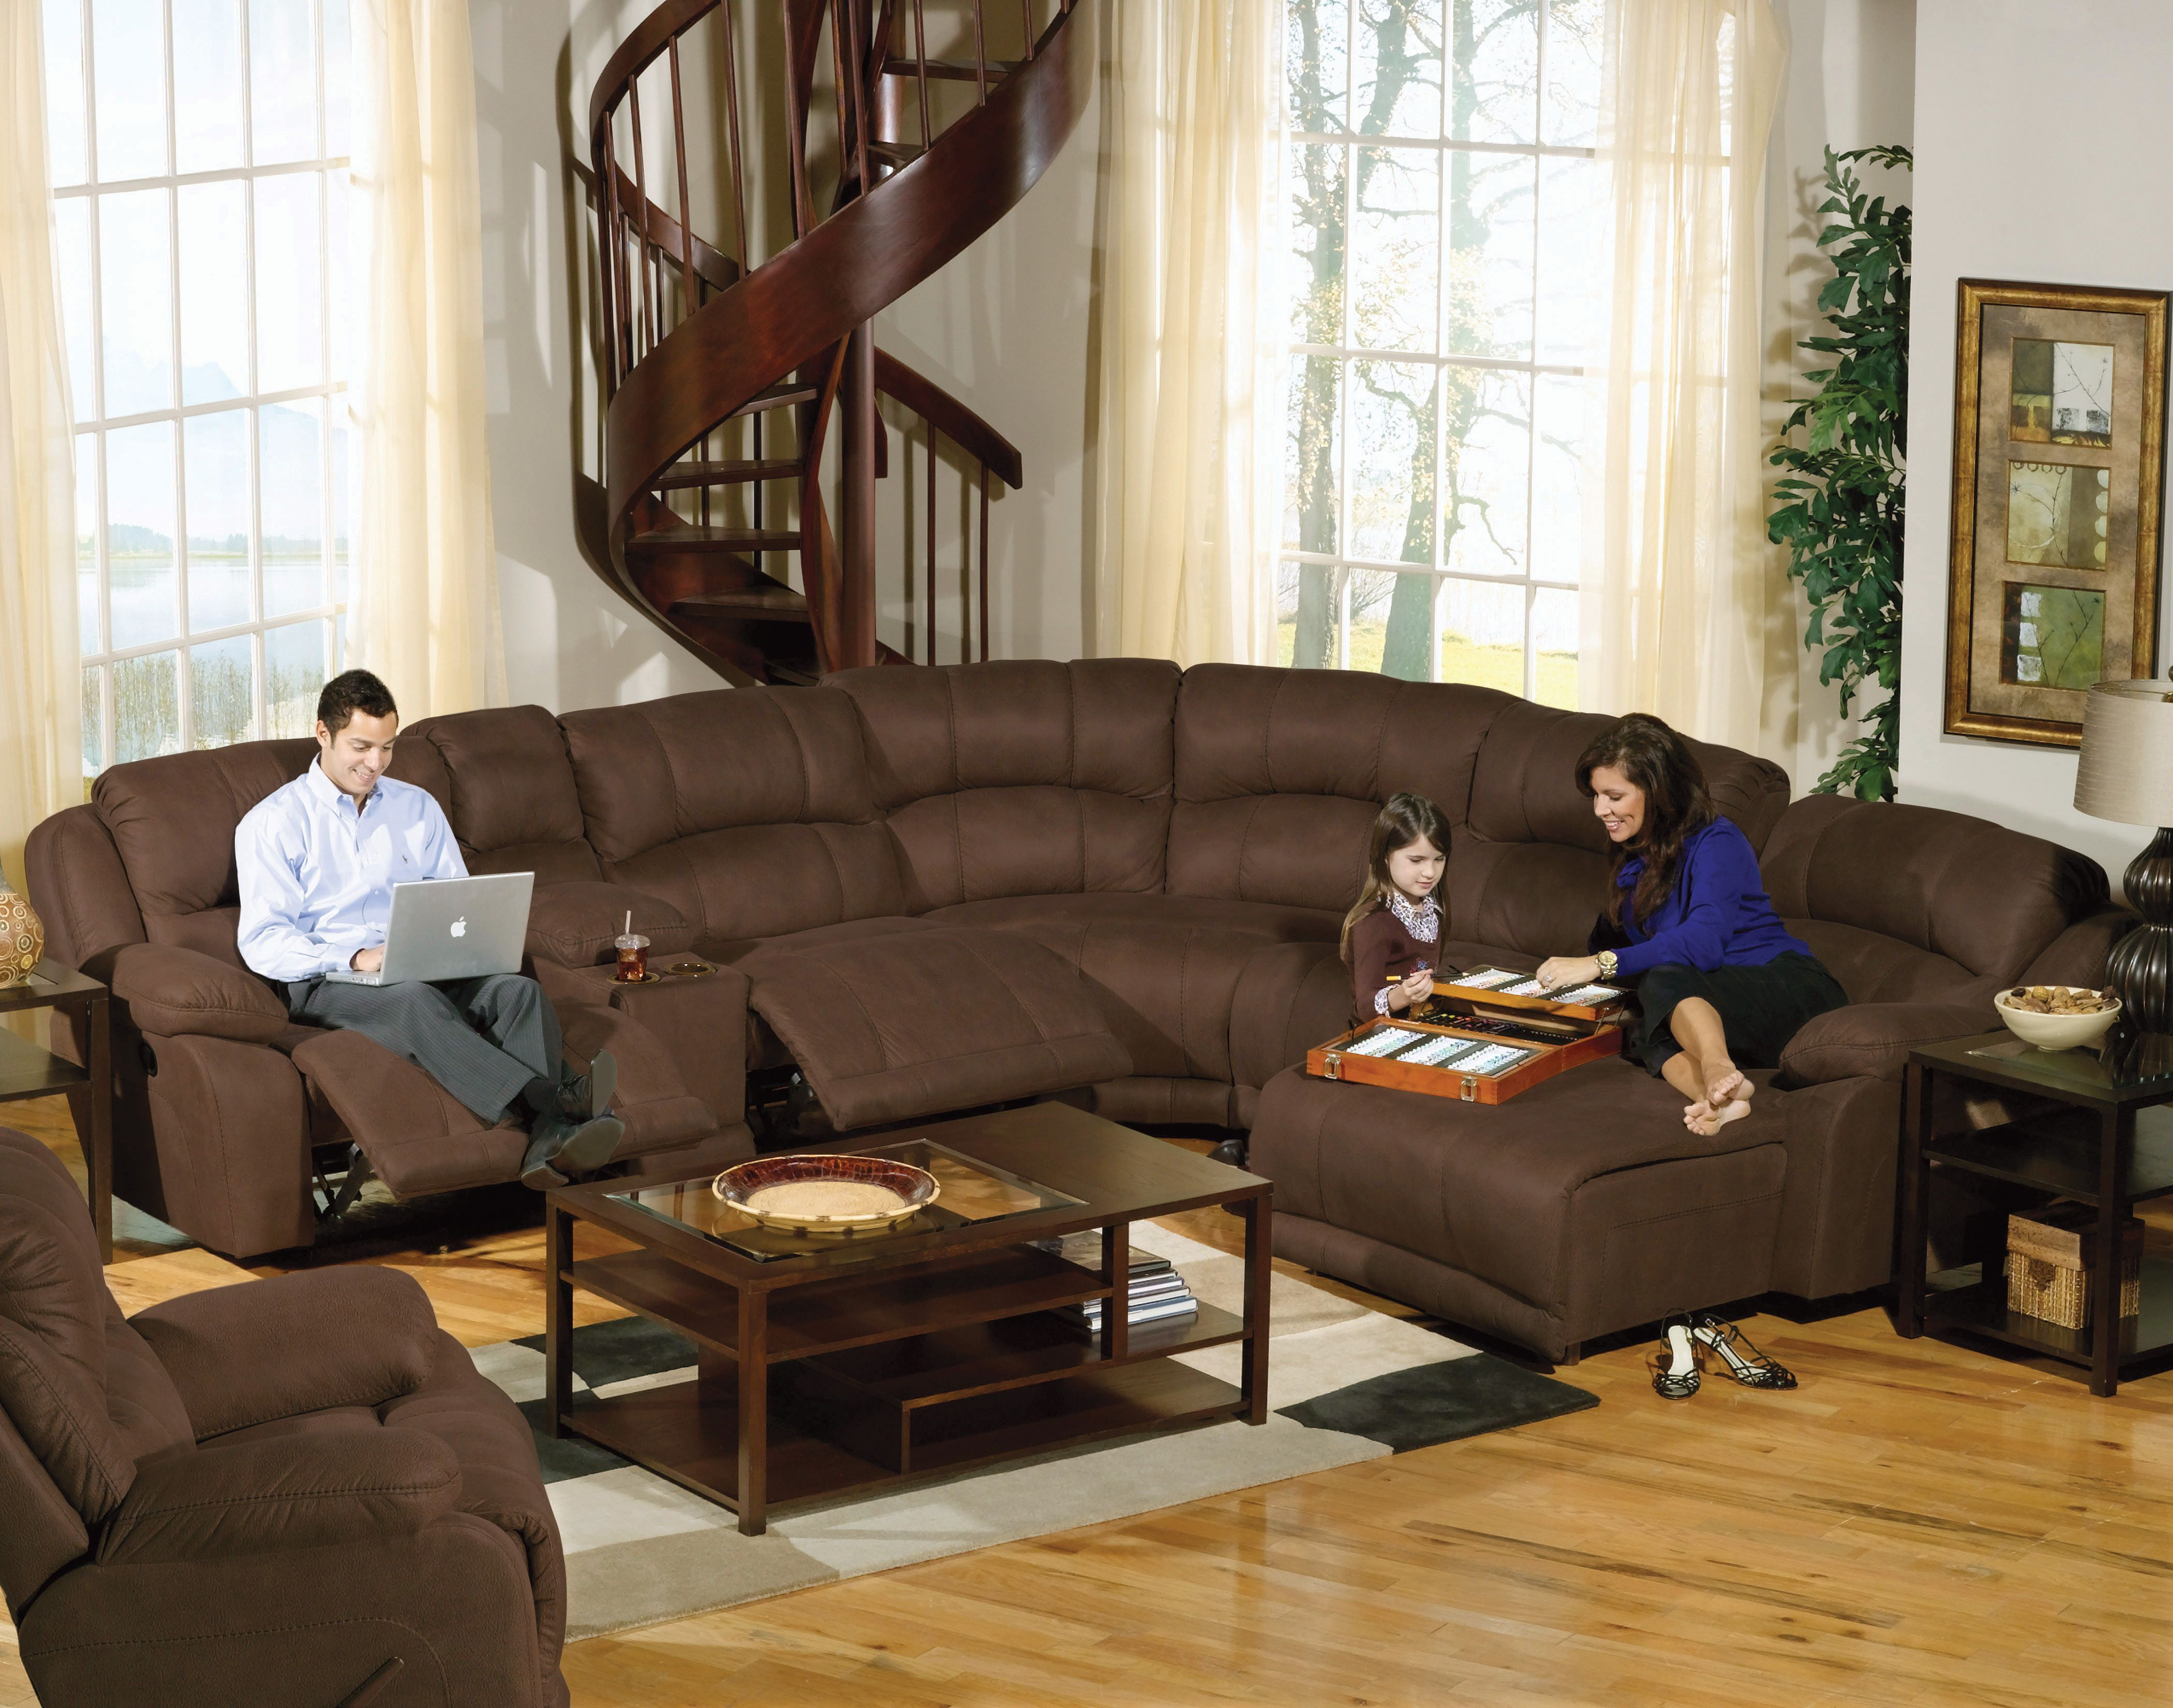 Buy Large Sectional Sofas Perfect For Your Large Living Room Darbylanefurniture In 2020 Large Sectional Sofa Sectional Sofa With Recliner Sectional Sofa With Chaise